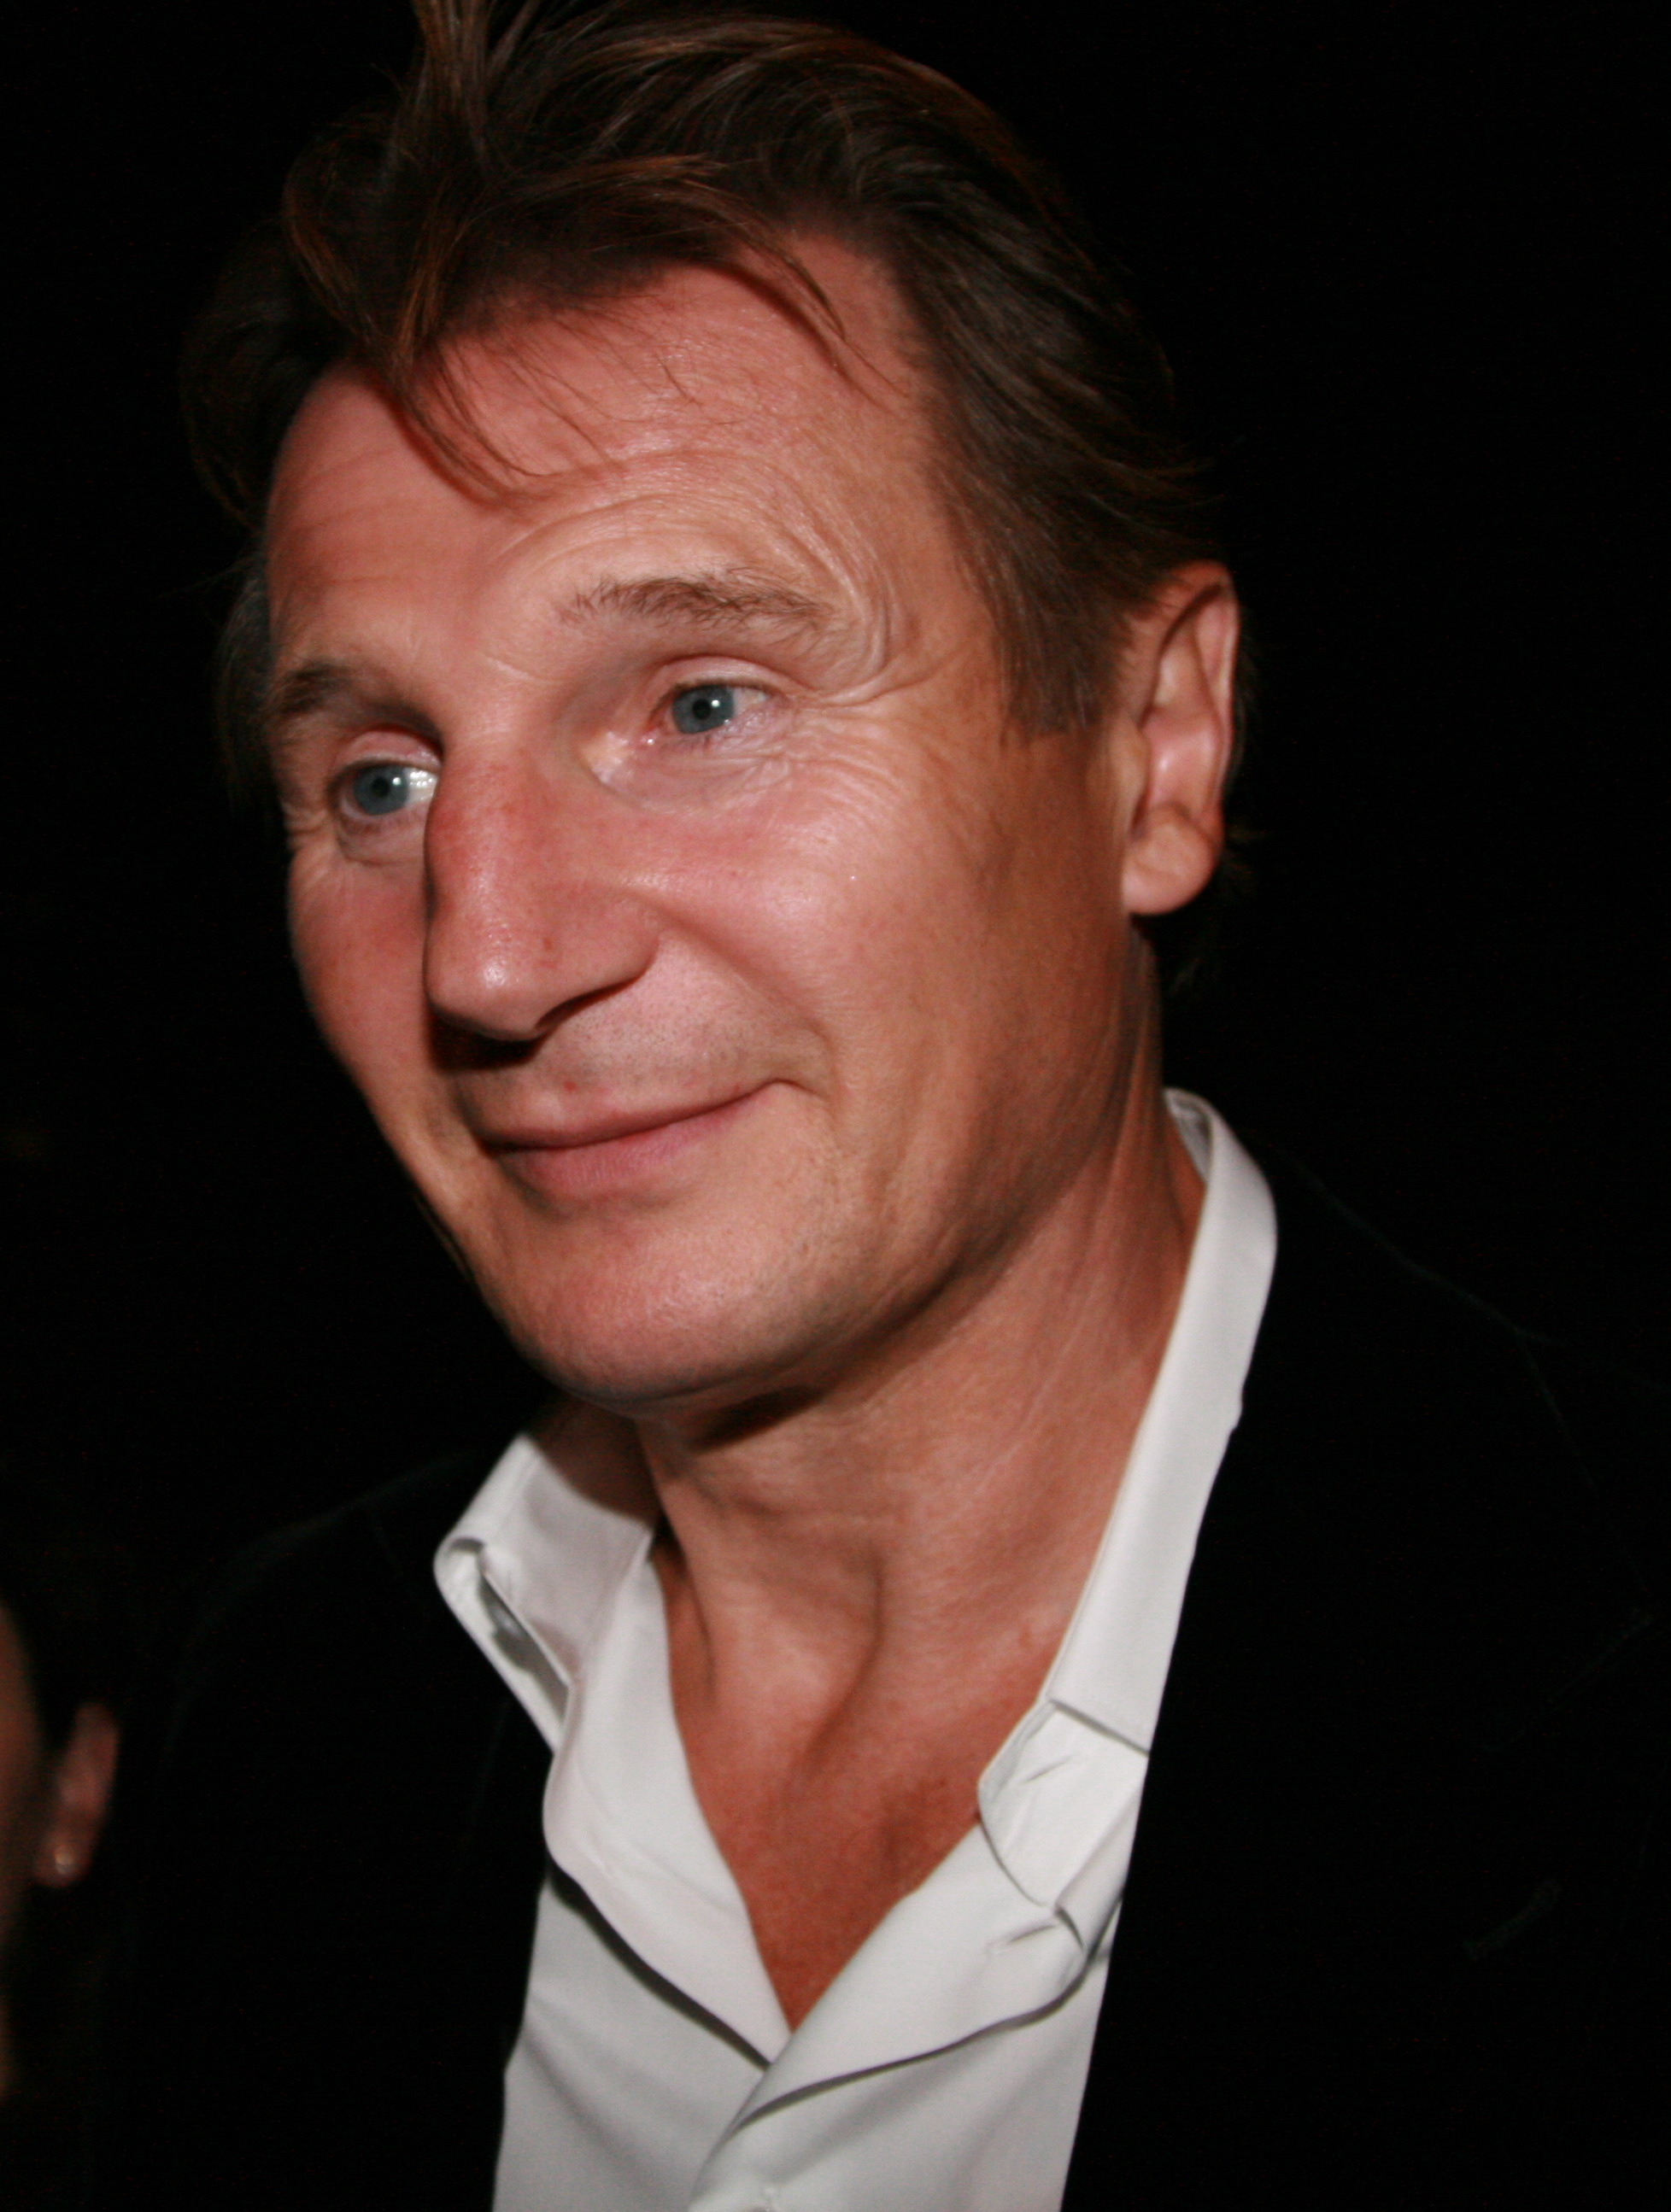 Liam Neeson (born 1952 (naturalized American citizen)